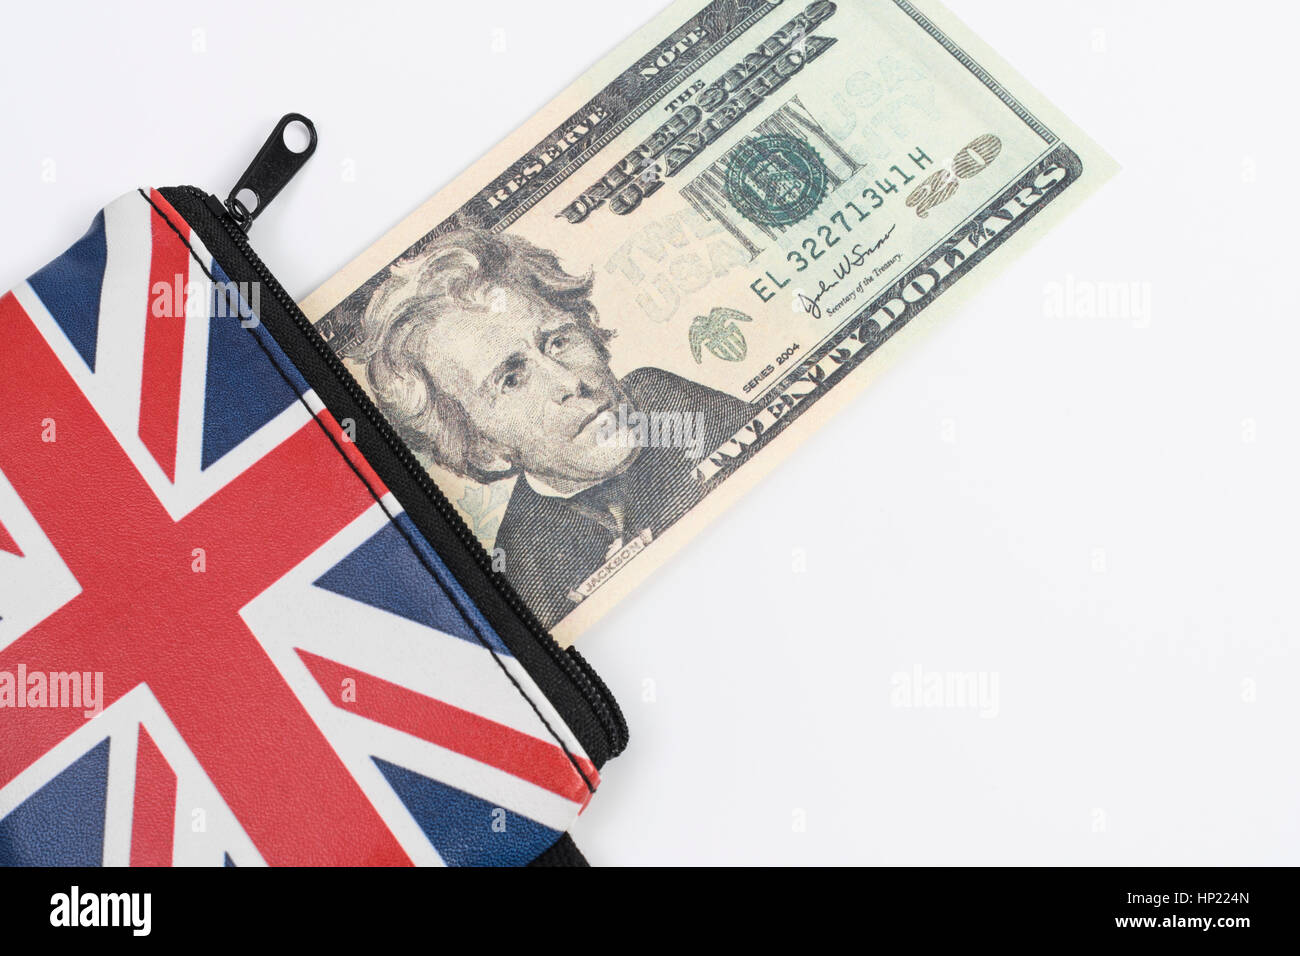 Union Jack coin purse with US 20$ / twenty dollar bill / banknote - as metaphor for US Dollar-Sterling exchange - Stock Image